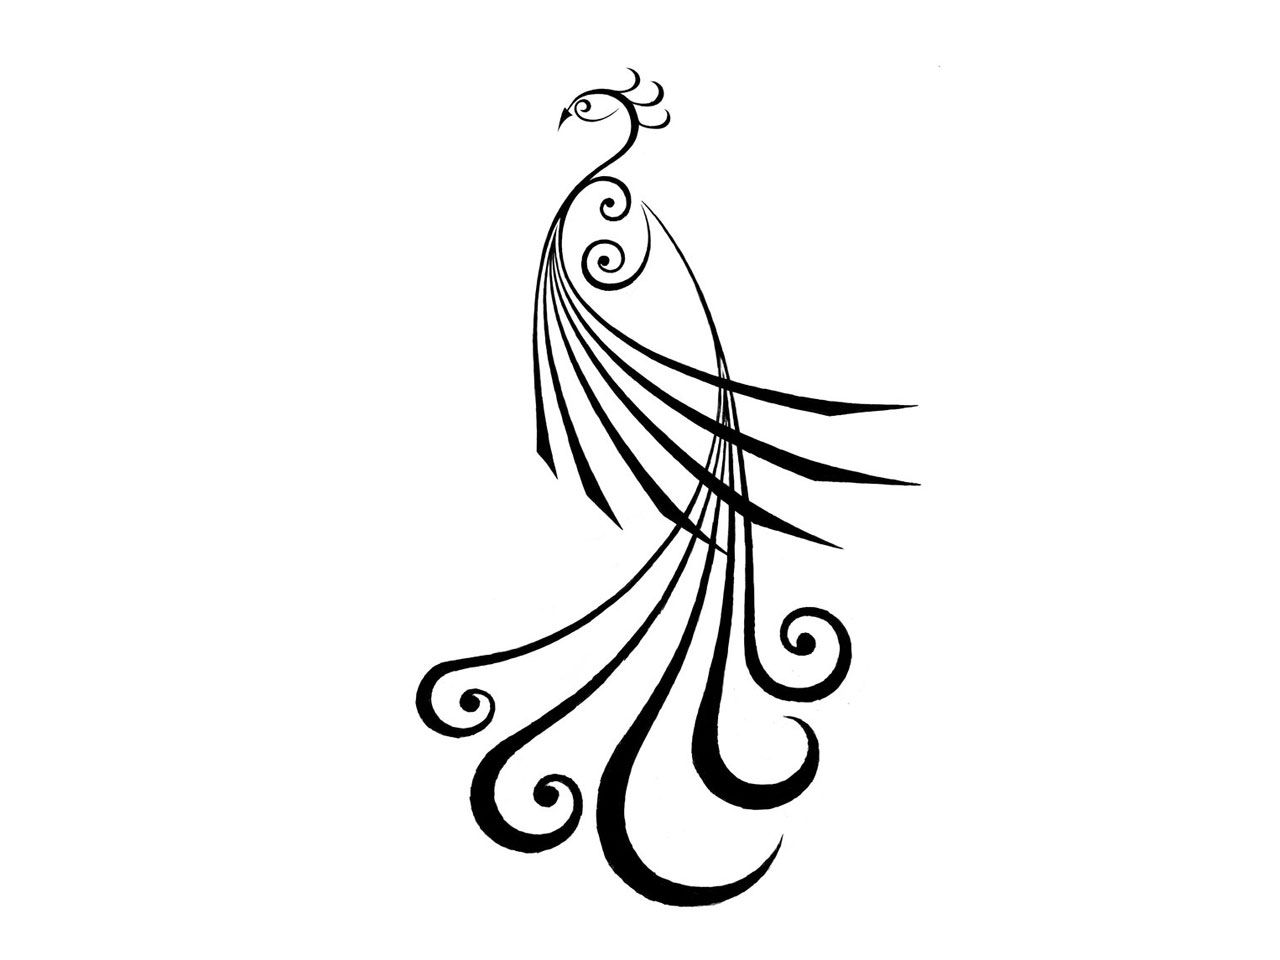 Simple Tattoo Drawing At Getdrawings Com Free For Personal Use